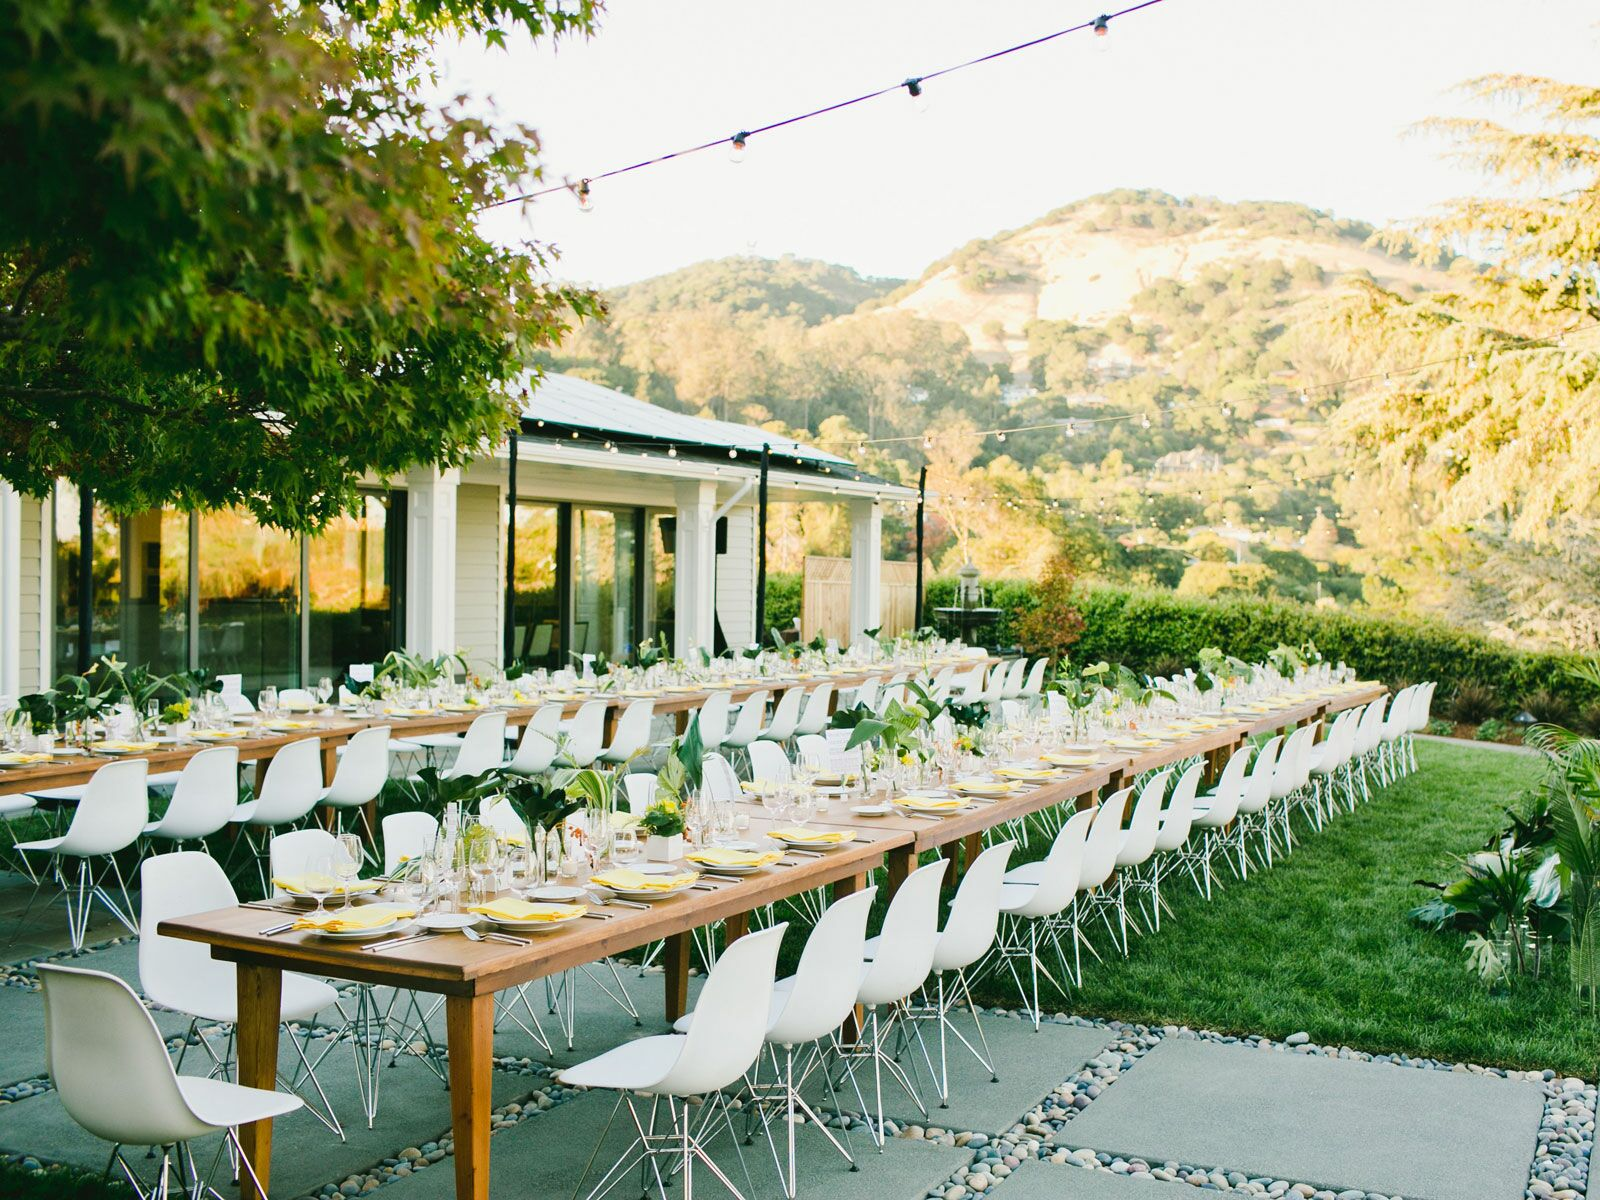 Backyard Wedding Tips: How to Plan an At-Home Wedding in ... on backyard pool lighting ideas, birdhouse decorating ideas, backyard pool wedding ideas, backyard pool fencing ideas, lake decorating ideas, backyard pool garden, backyard pool construction, backyard pool deck ideas, backyard pool fireplaces, river decorating ideas, barbecue decorating ideas, bird bath decorating ideas, backyard pool design, backyard pool furniture ideas, ocean decorating ideas, backyard pool diy, backyard pool storage ideas, backyard pool house ideas, small backyard pool ideas, backyard pool landscaping ideas,